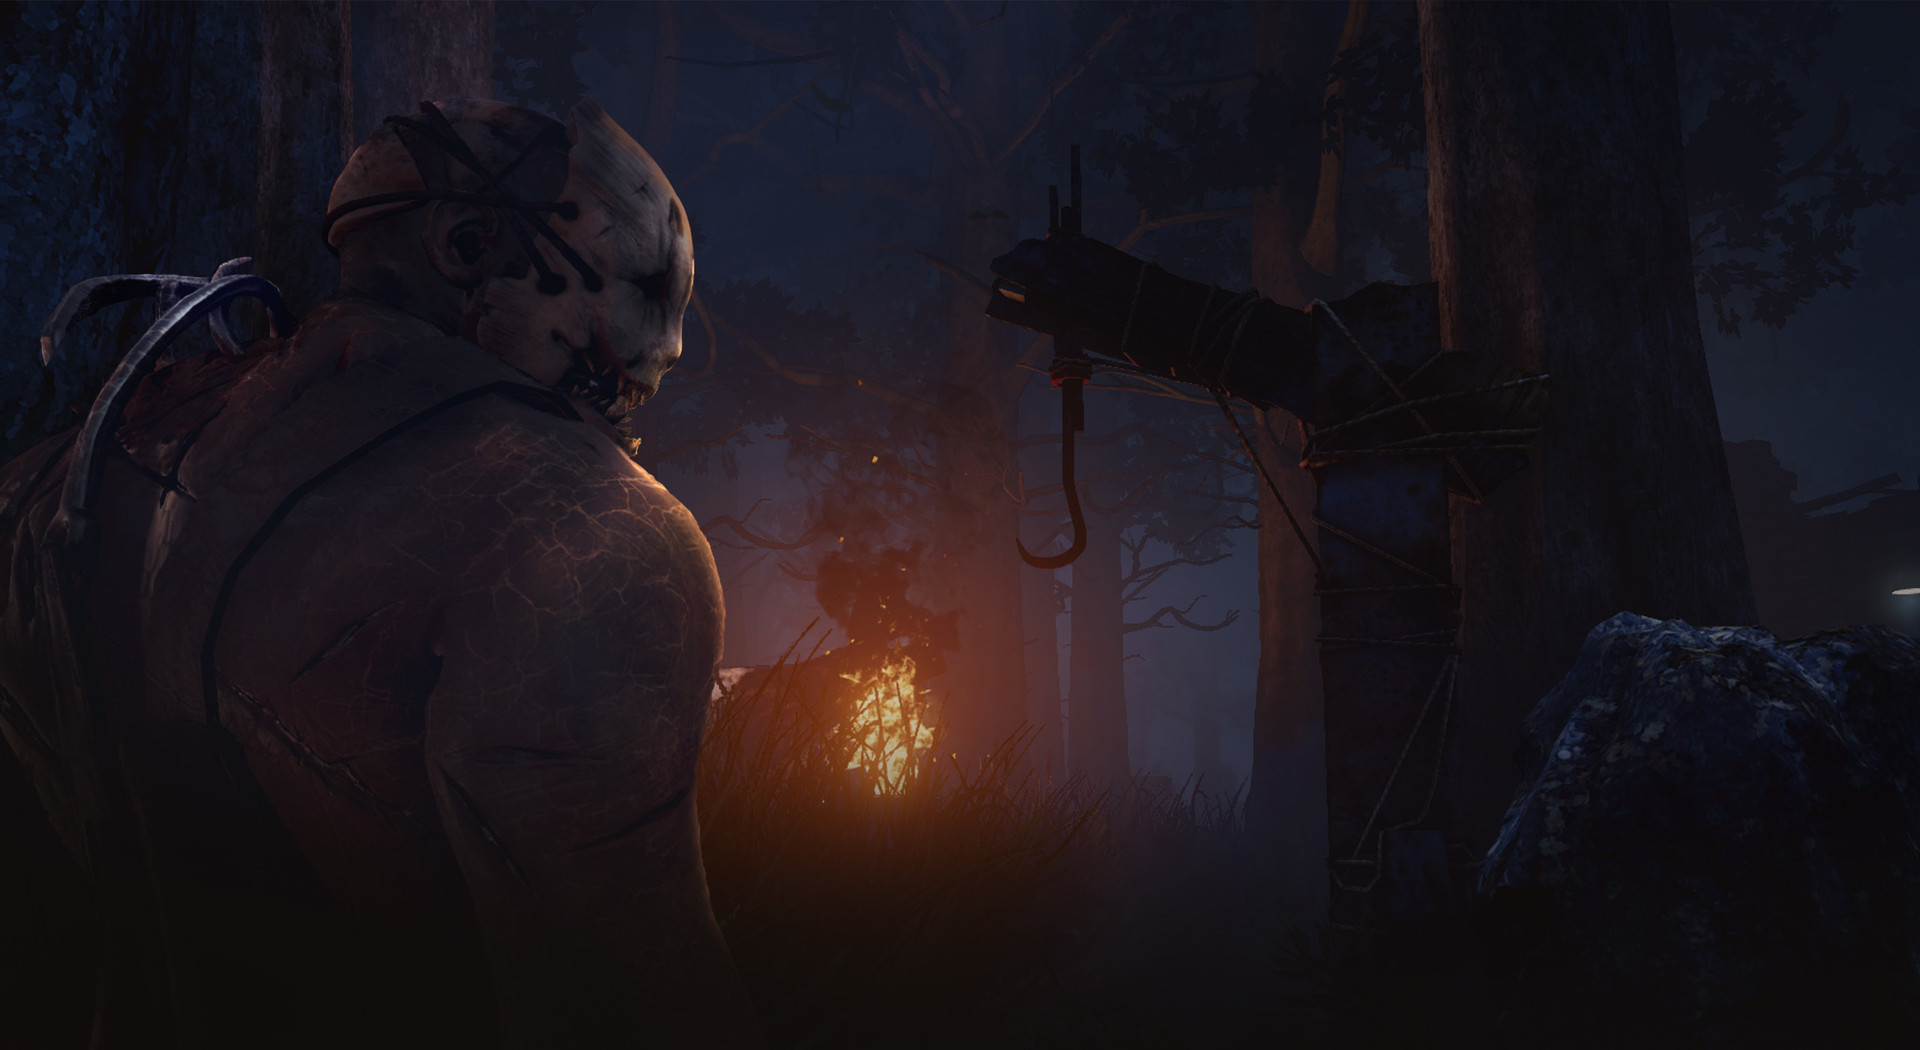 KHAiHOM.com - Dead by Daylight